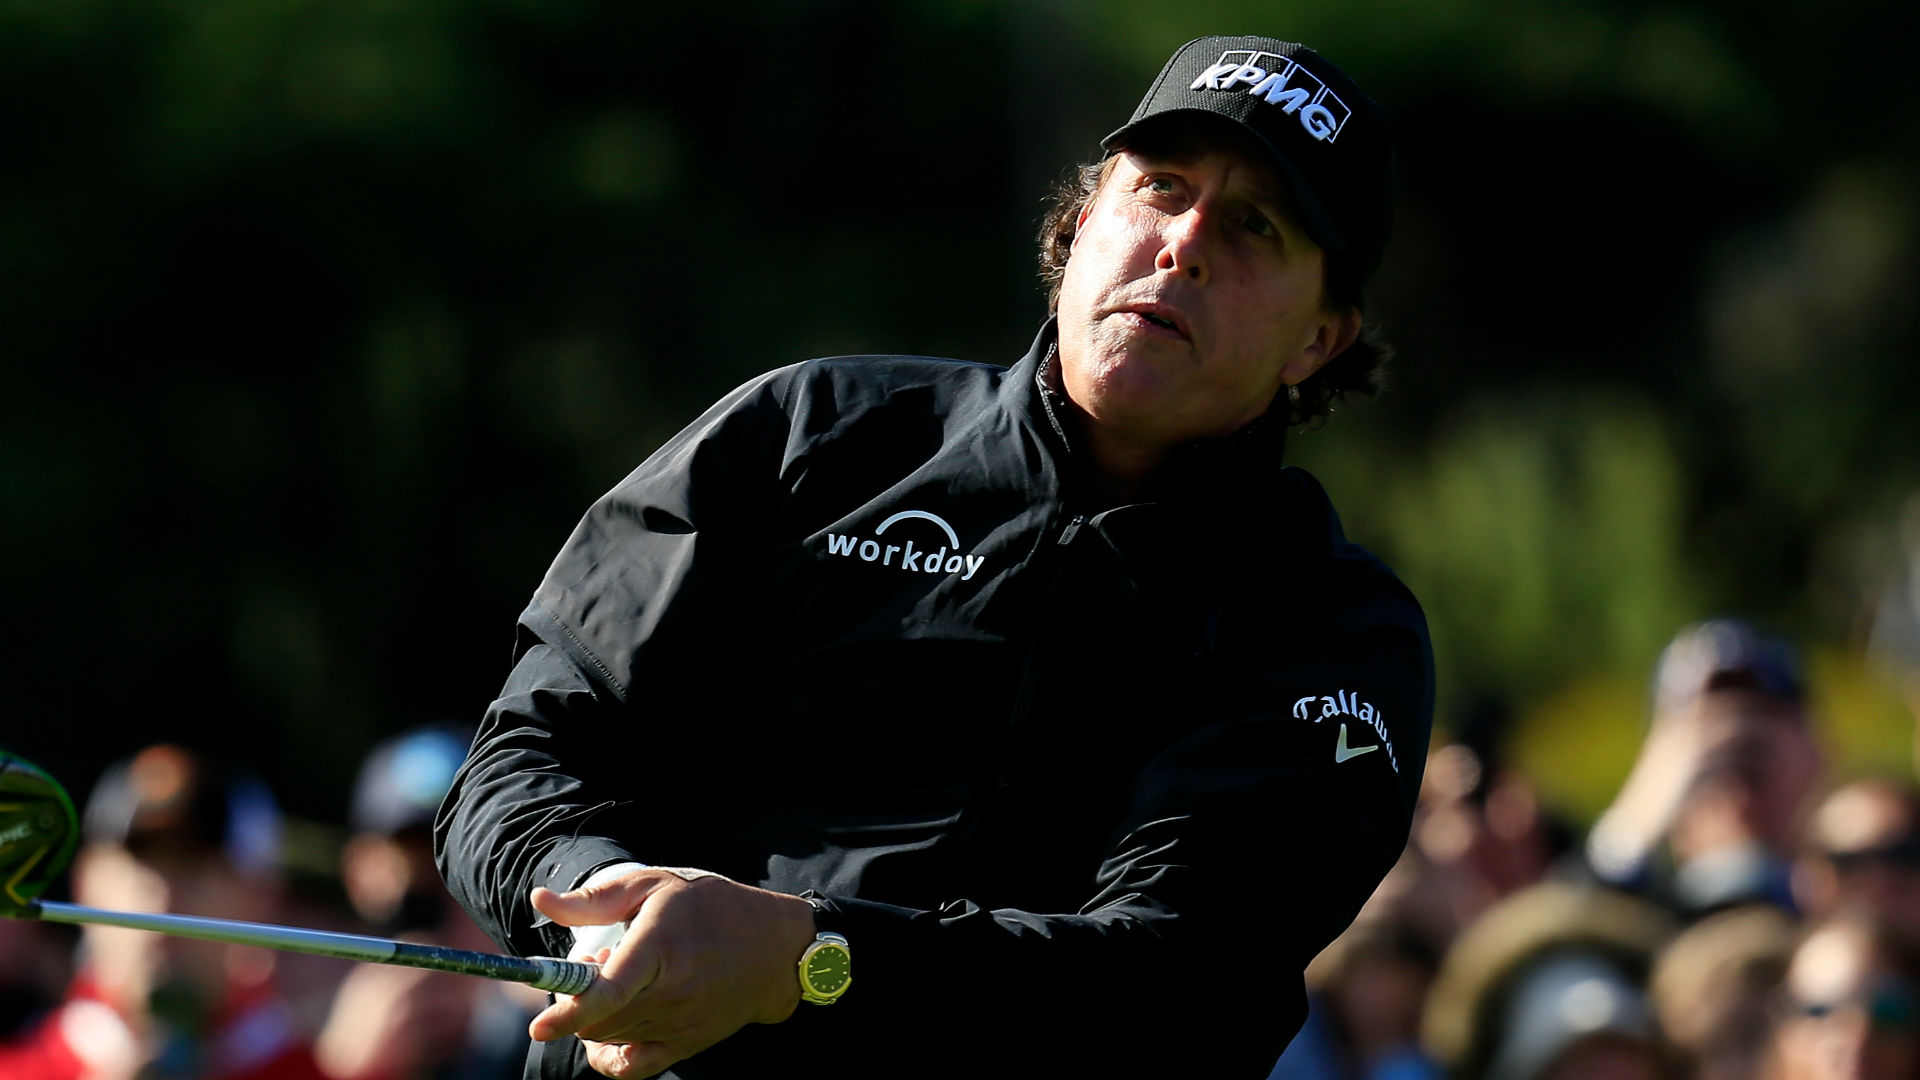 Mickelson on verge of Pebble Beach win